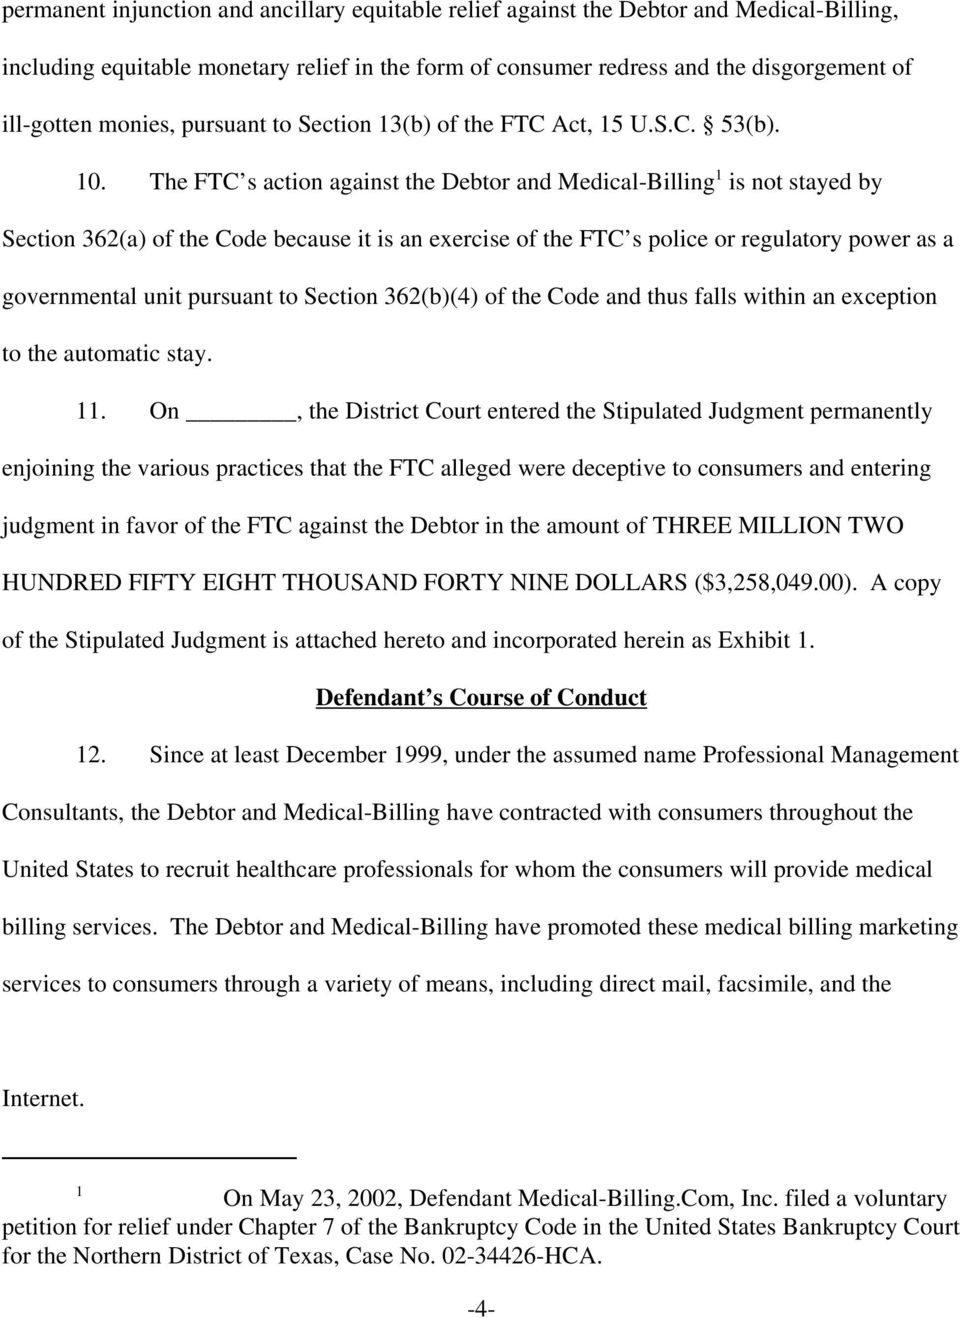 The FTC s action against the Debtor and Medical-Billing 1 is not stayed by Section 362(a of the Code because it is an exercise of the FTC s police or regulatory power as a governmental unit pursuant